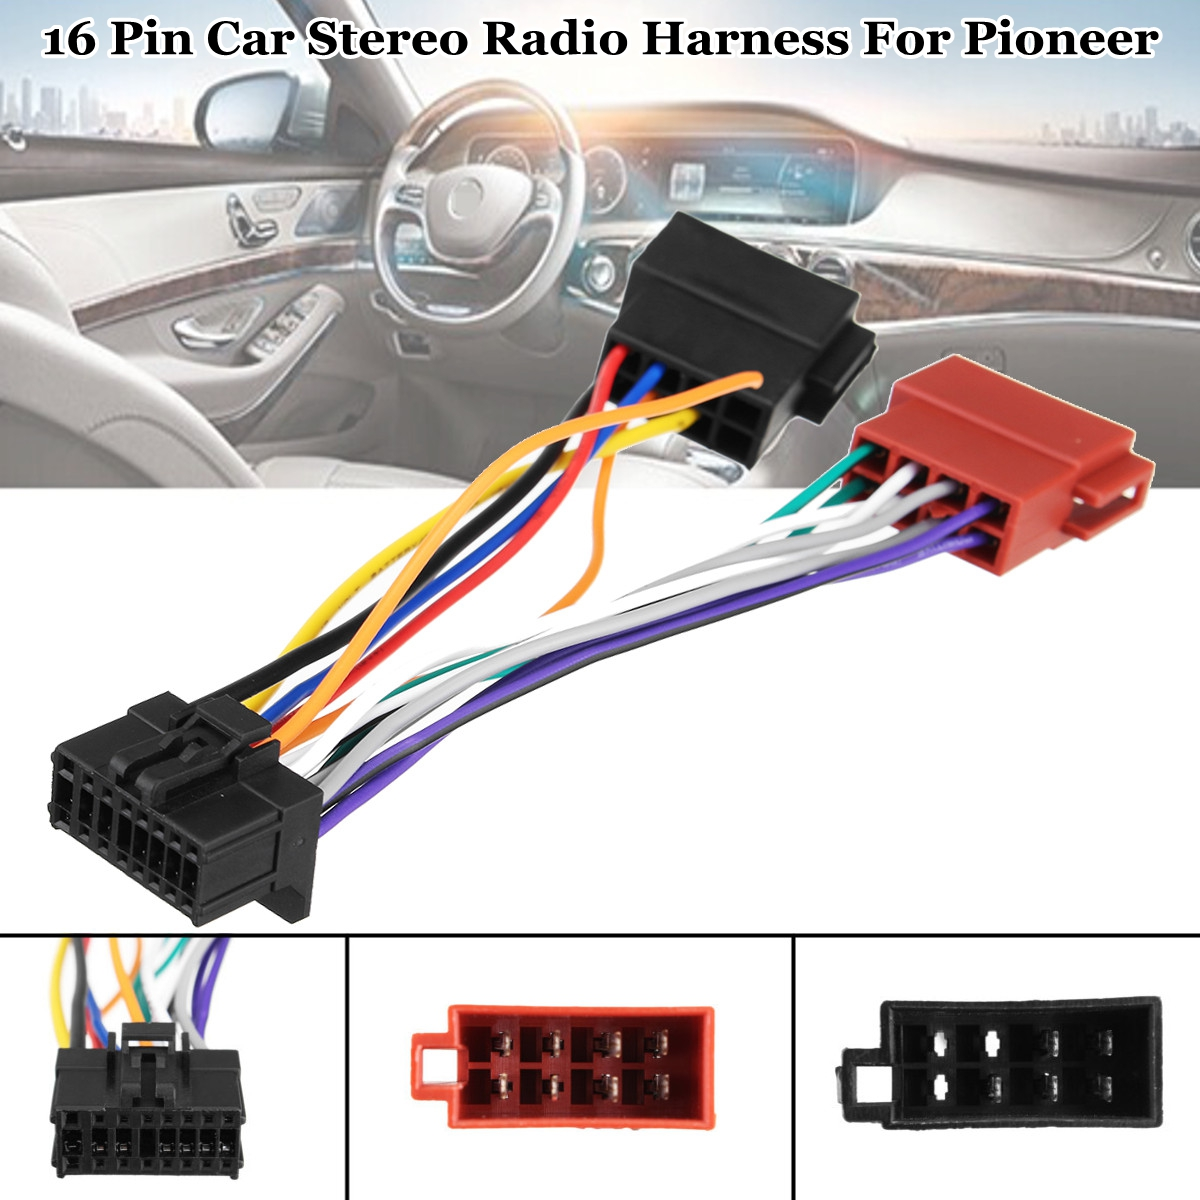 Biurlink Car Stereo Radio Iso Harness Cable Adapter For Pioneer 2350 Deh 3300ub Wiring Connector 16 Pin Pi100 2003 On